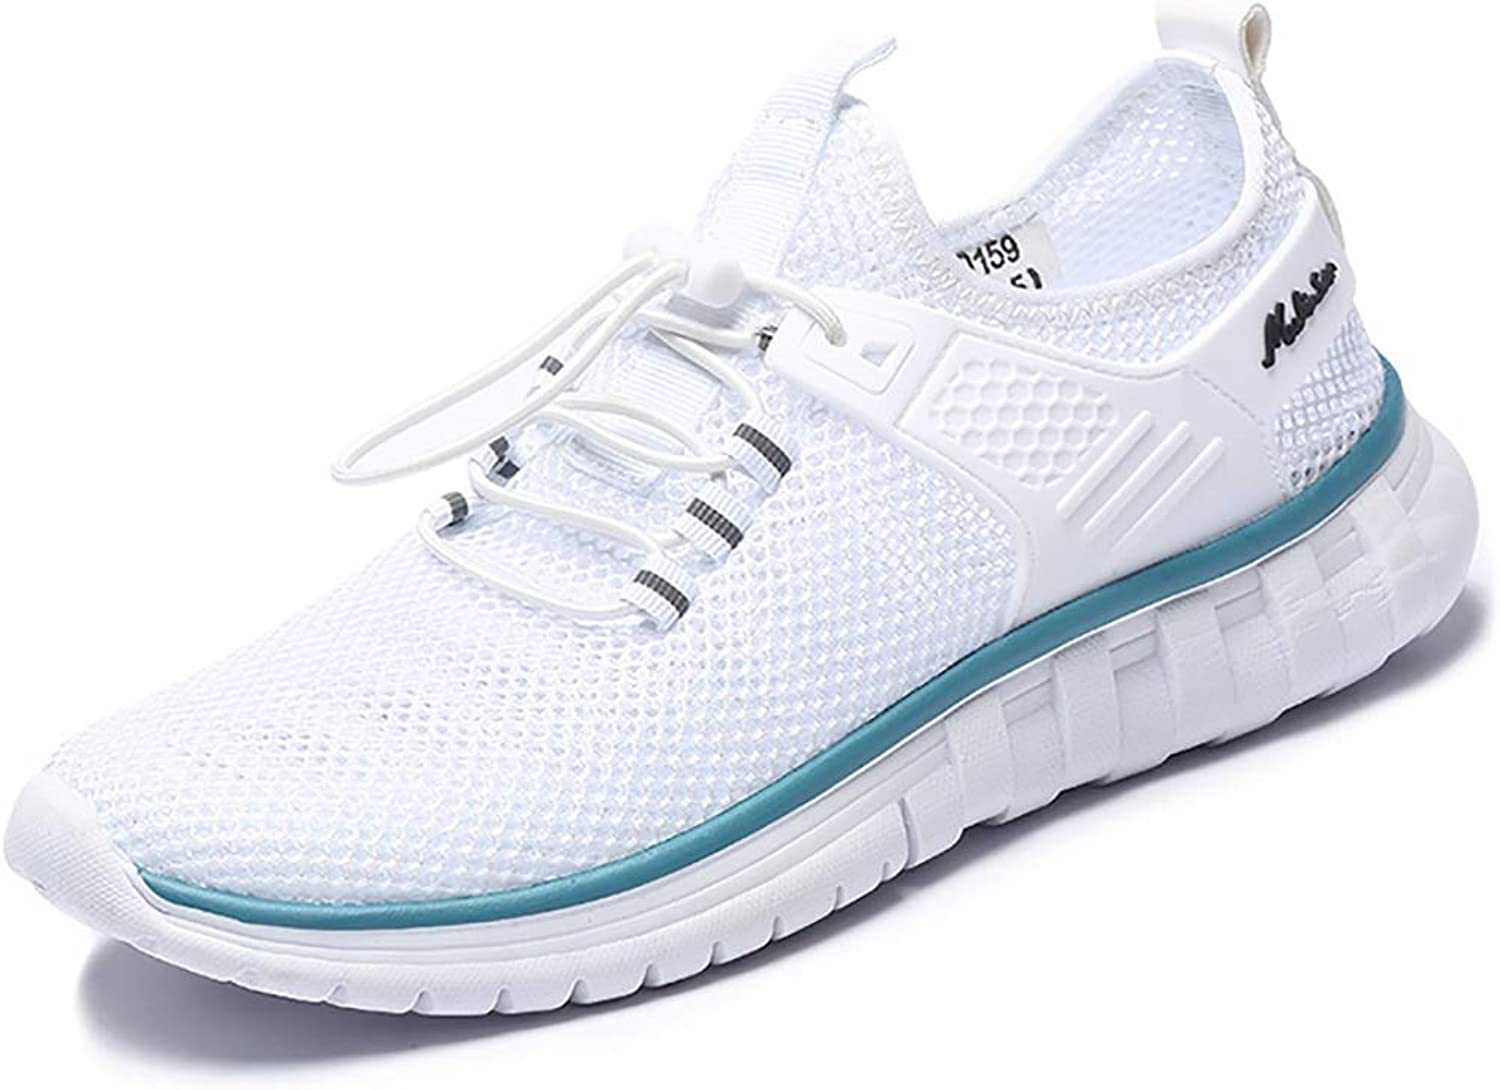 GAIQIN Casual shoes Men's Lace-up shoes Sports Casual Breathable Quick-drying Lightweight Running Mesh shoes (color   White, Size   38)